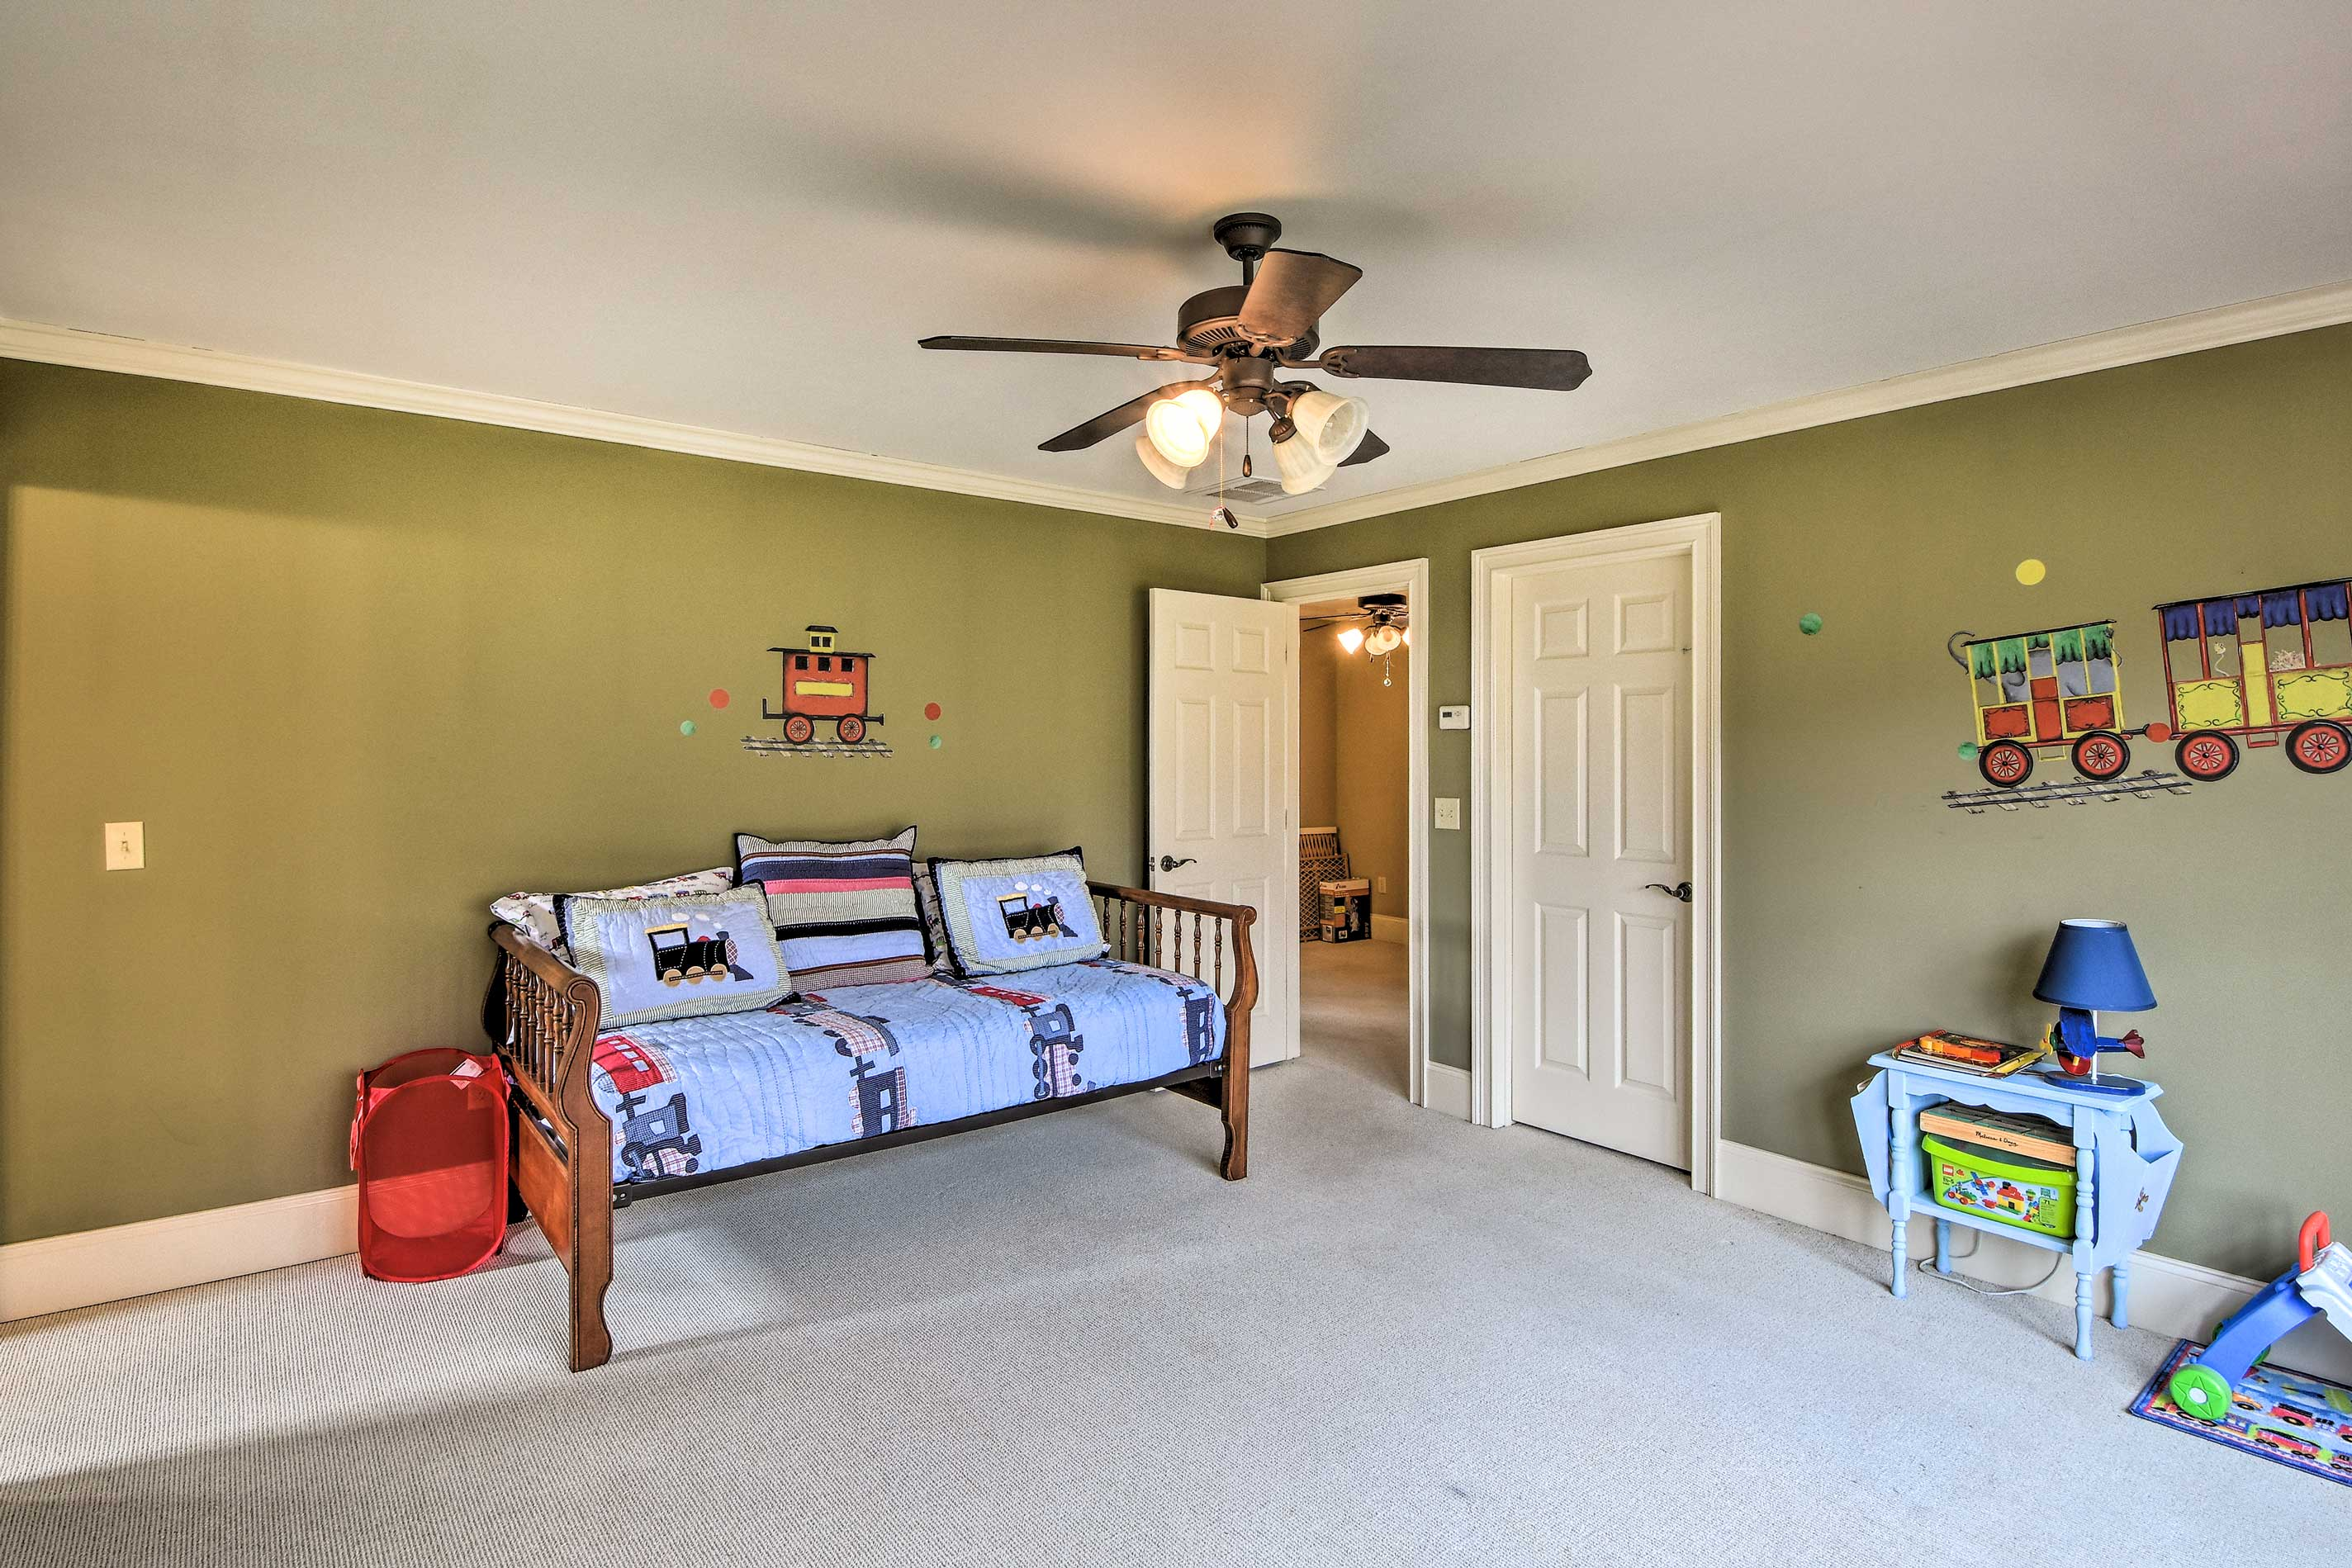 It features a twin bed, plus numerous children's toys.